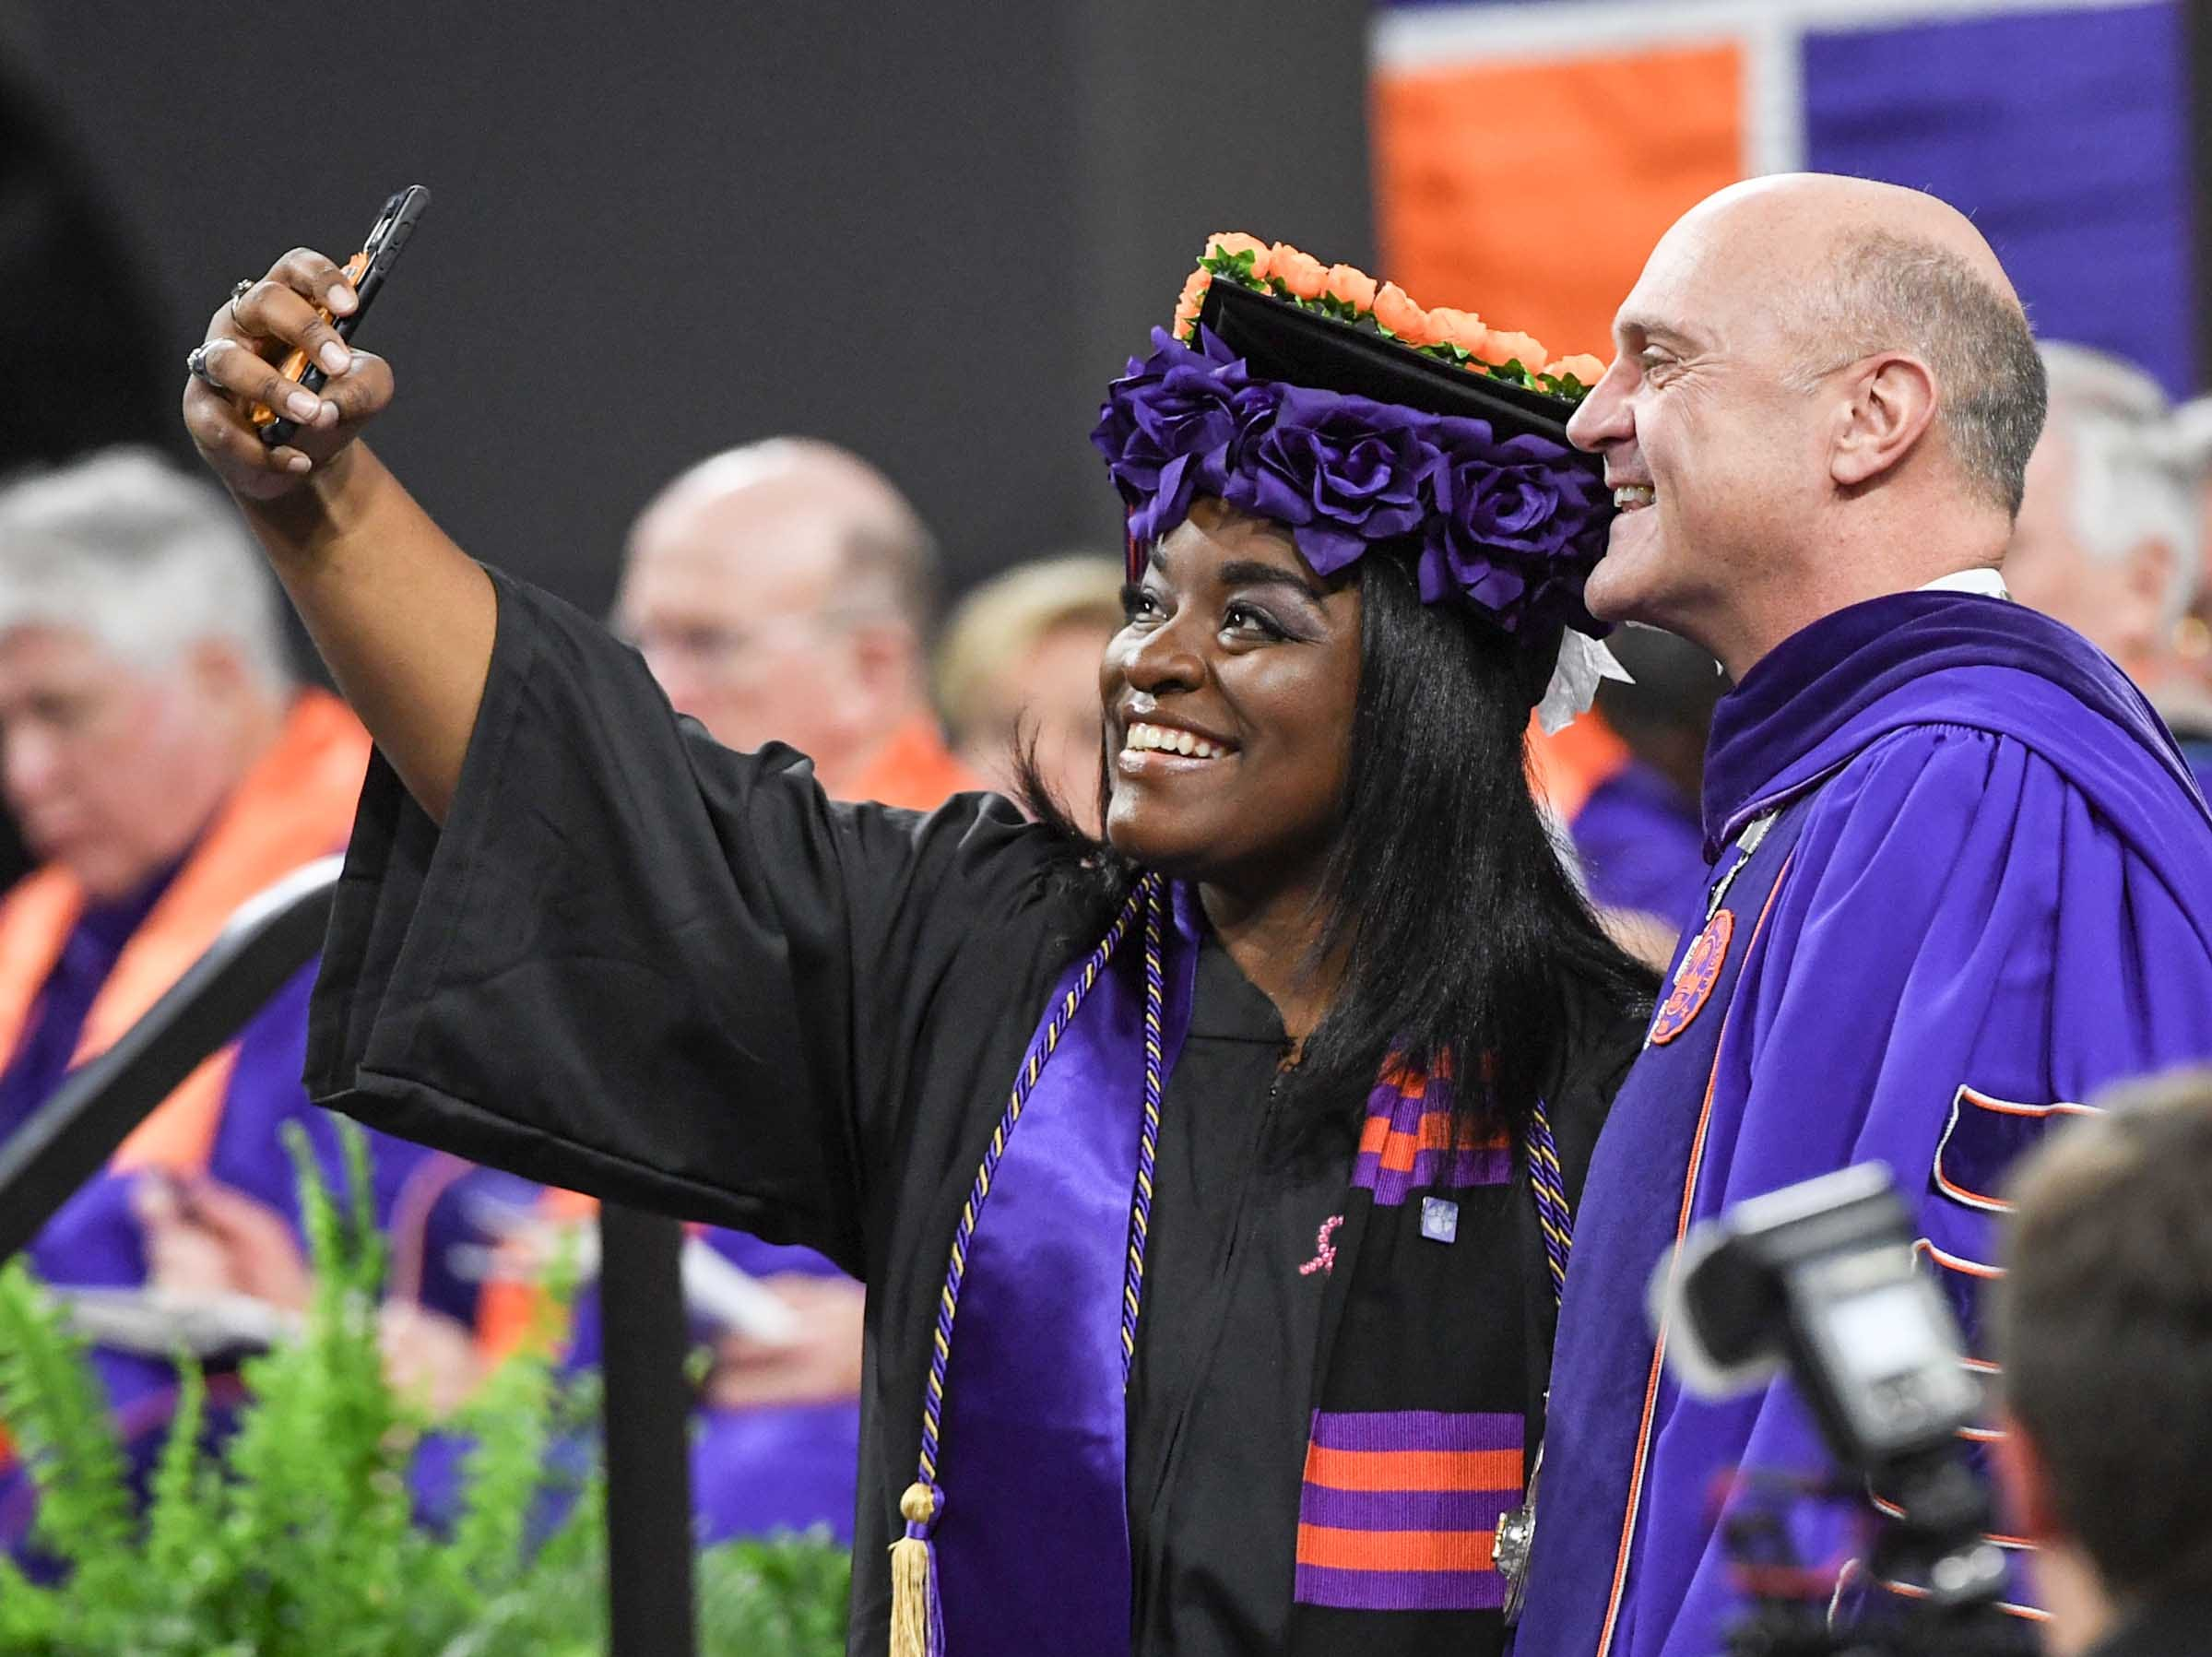 Dorothy Davis gets a selfie with President Jim Clements during Clemson University graduation ceremony Thursday morning in Littlejohn Coliseum in Clemson.